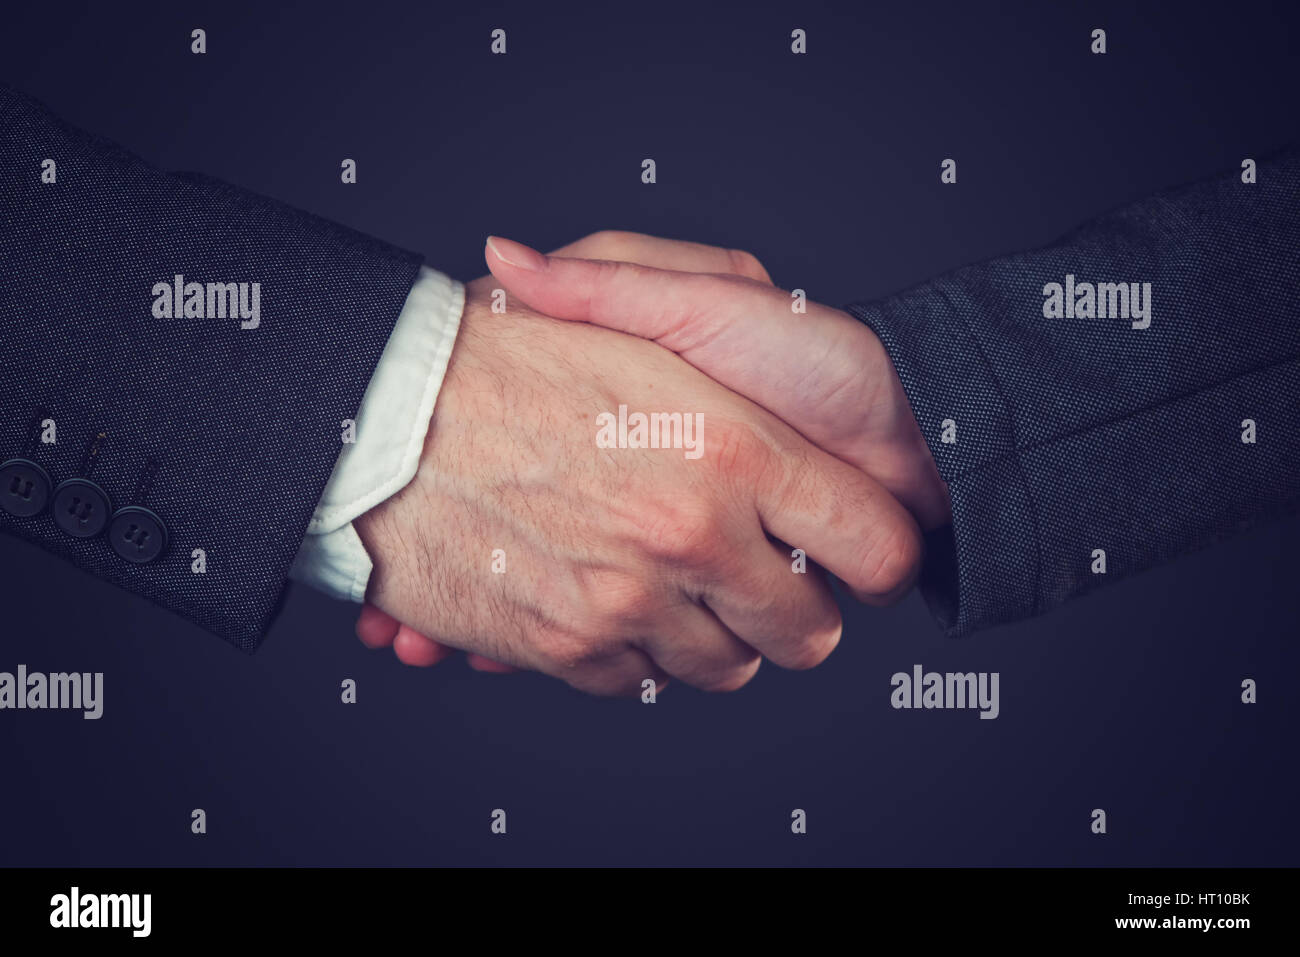 Joint venture, corporate people handshaking to form a temporary partnership by shared ownership over business undertaking - Stock Image